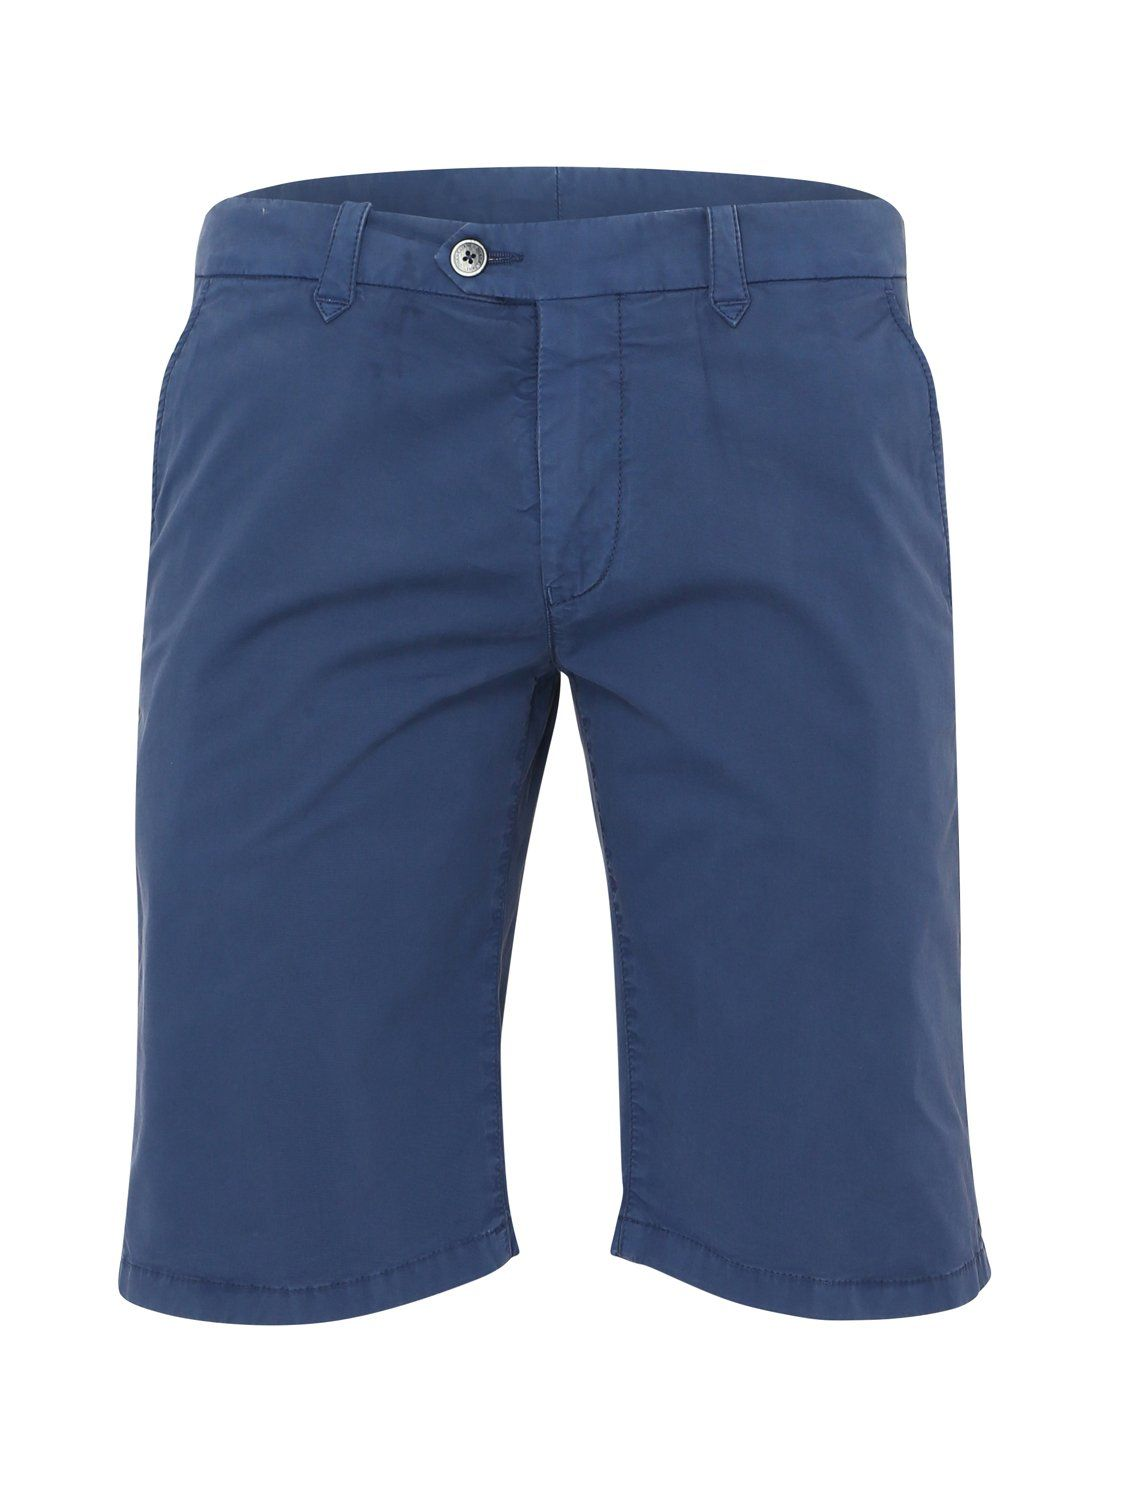 Corneliani Chino Shorts (Blue) EU 54 / UK 38